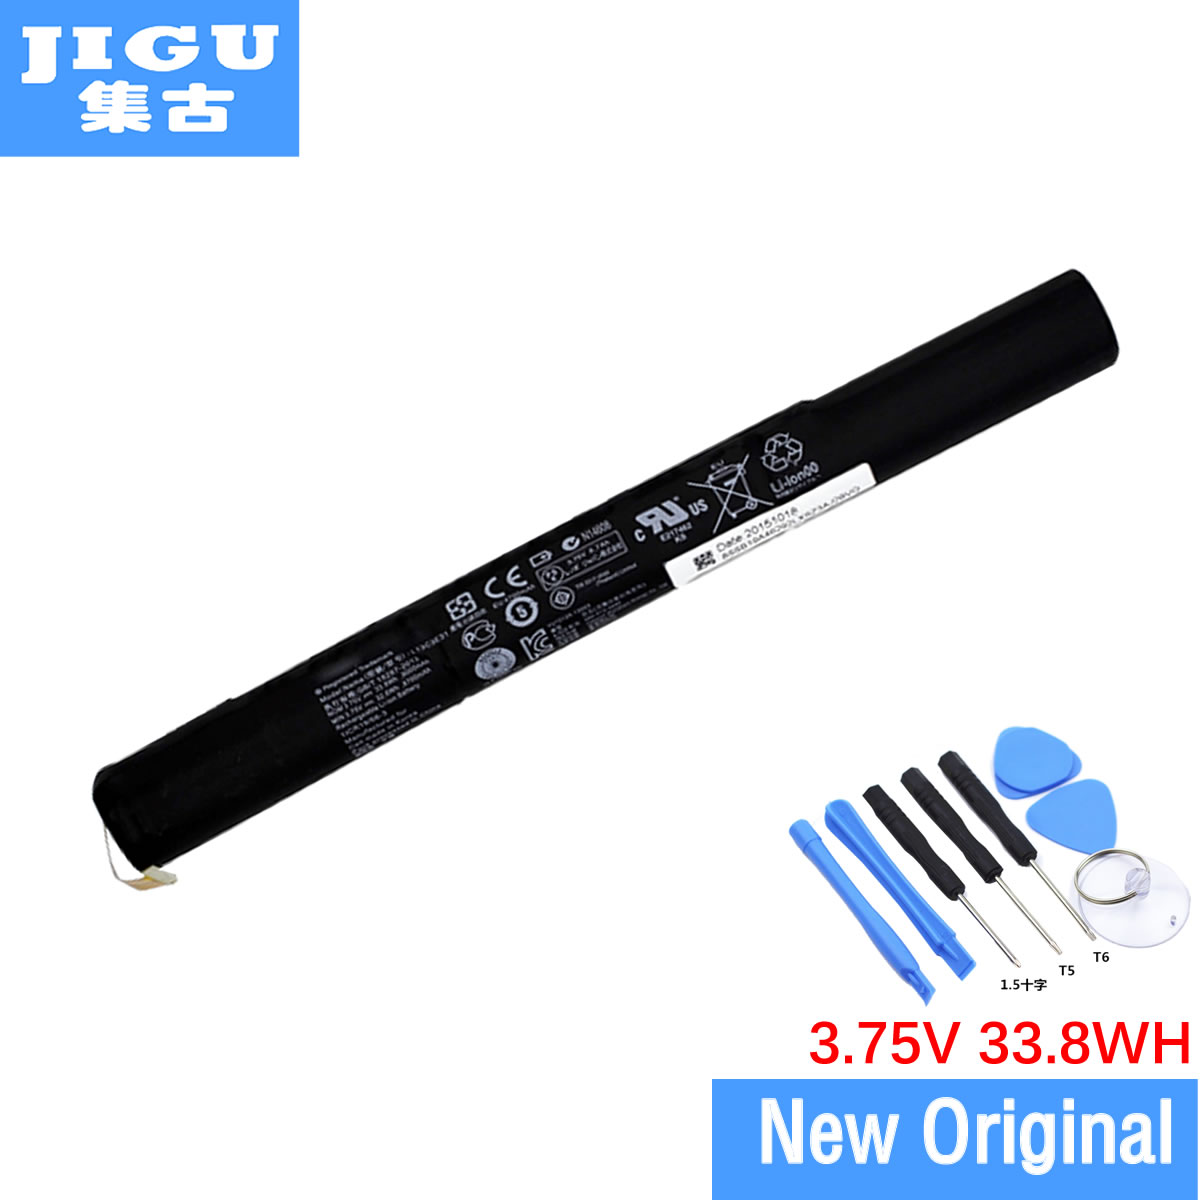 JIGU 3.75V 9000mAh New L13D3E31 Laptop Battery For LENOVO YOGA 10 B8000 B8080 Series Tablet L13C3E31 L13D3E31 Free Shipping